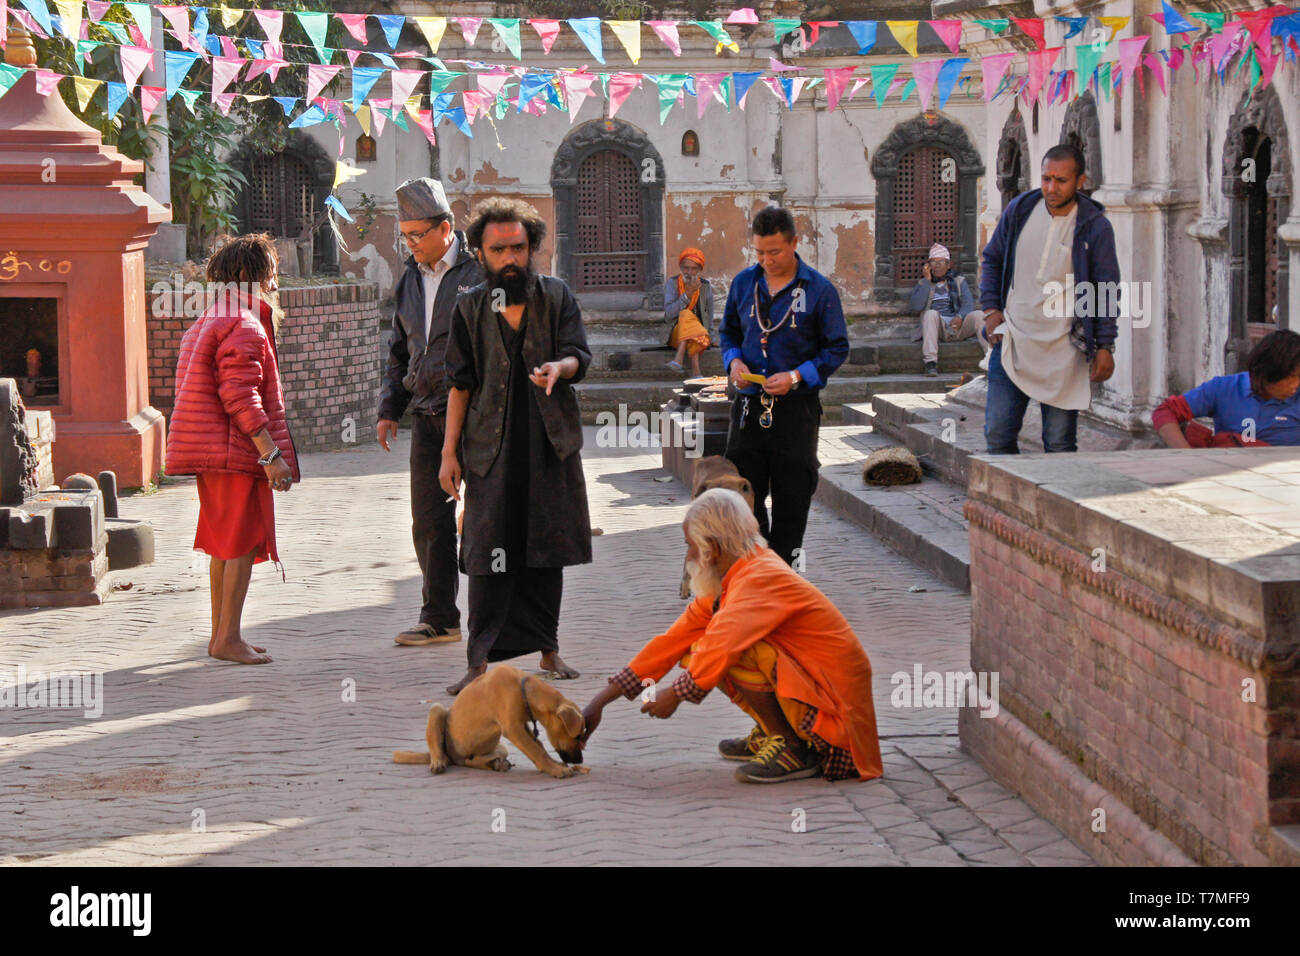 A Hindu holy man (sadhu) feeds a dog in the courtyard of a temple at Pashupatinath complex, Kathmandu Valley, Nepal - Stock Image